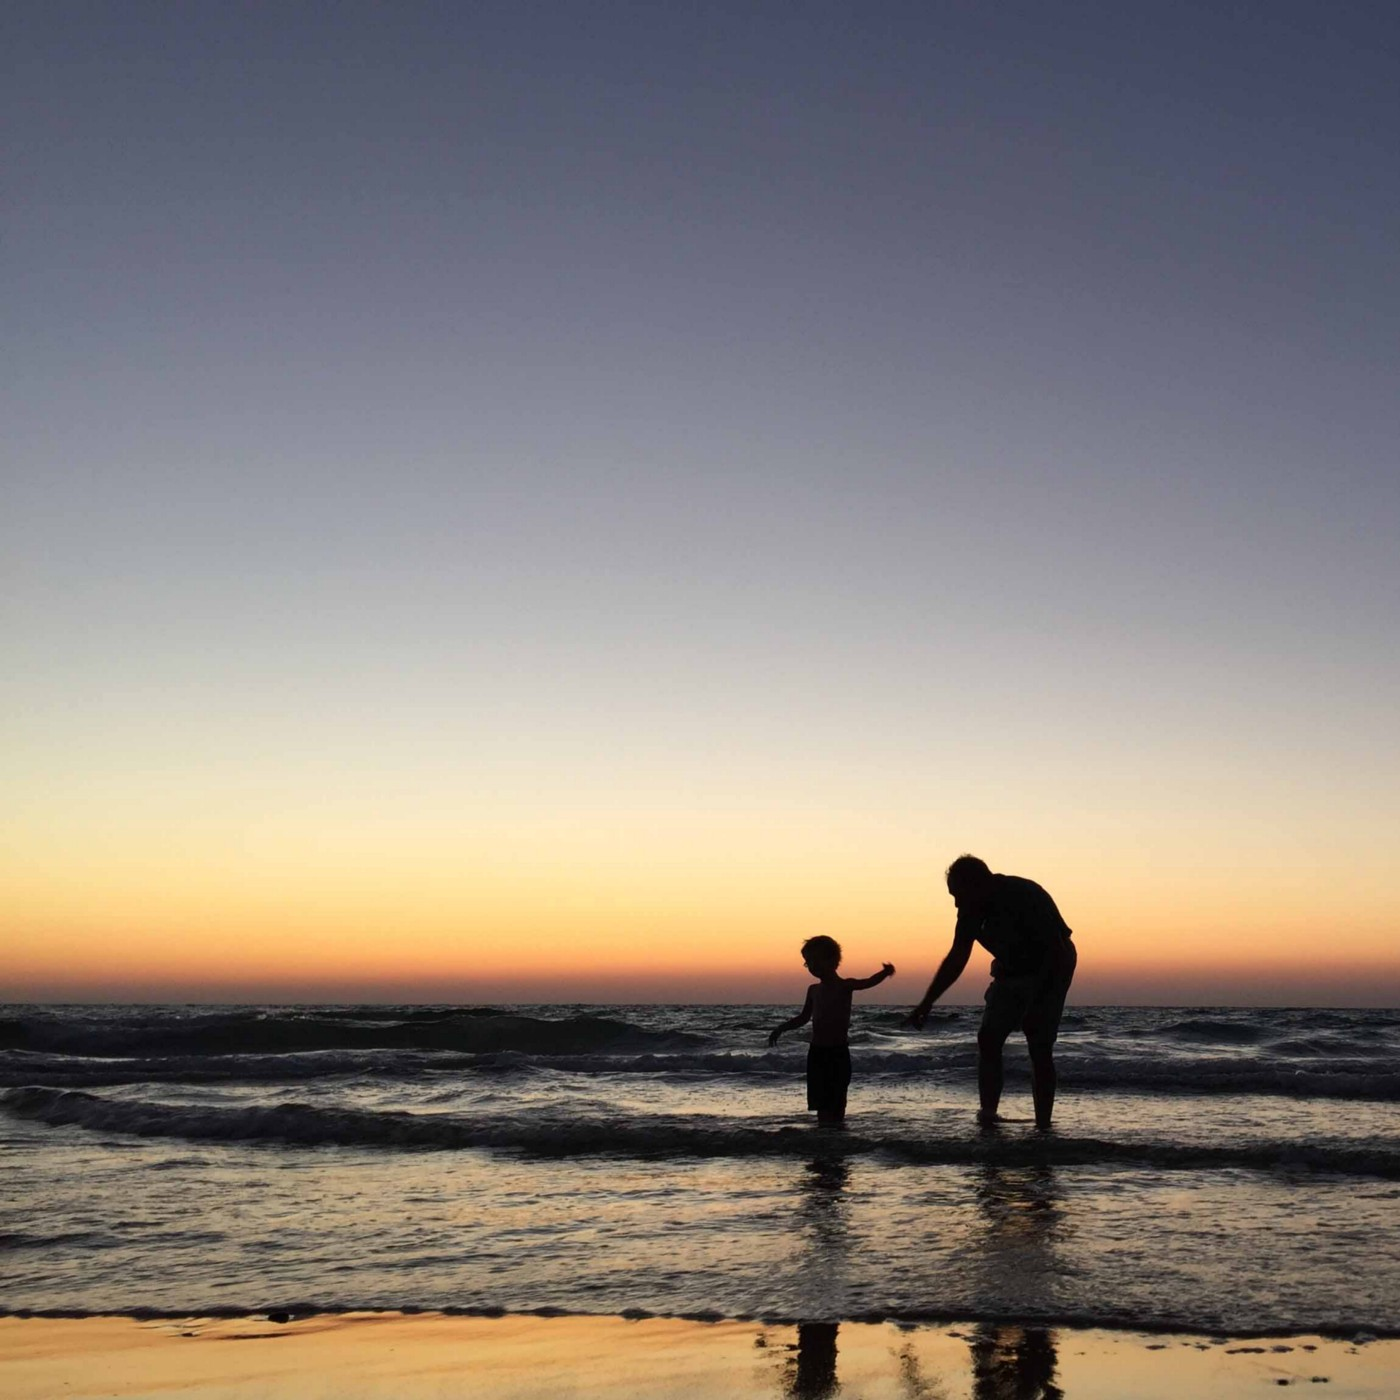 Sillhouette of a father and child on a beach